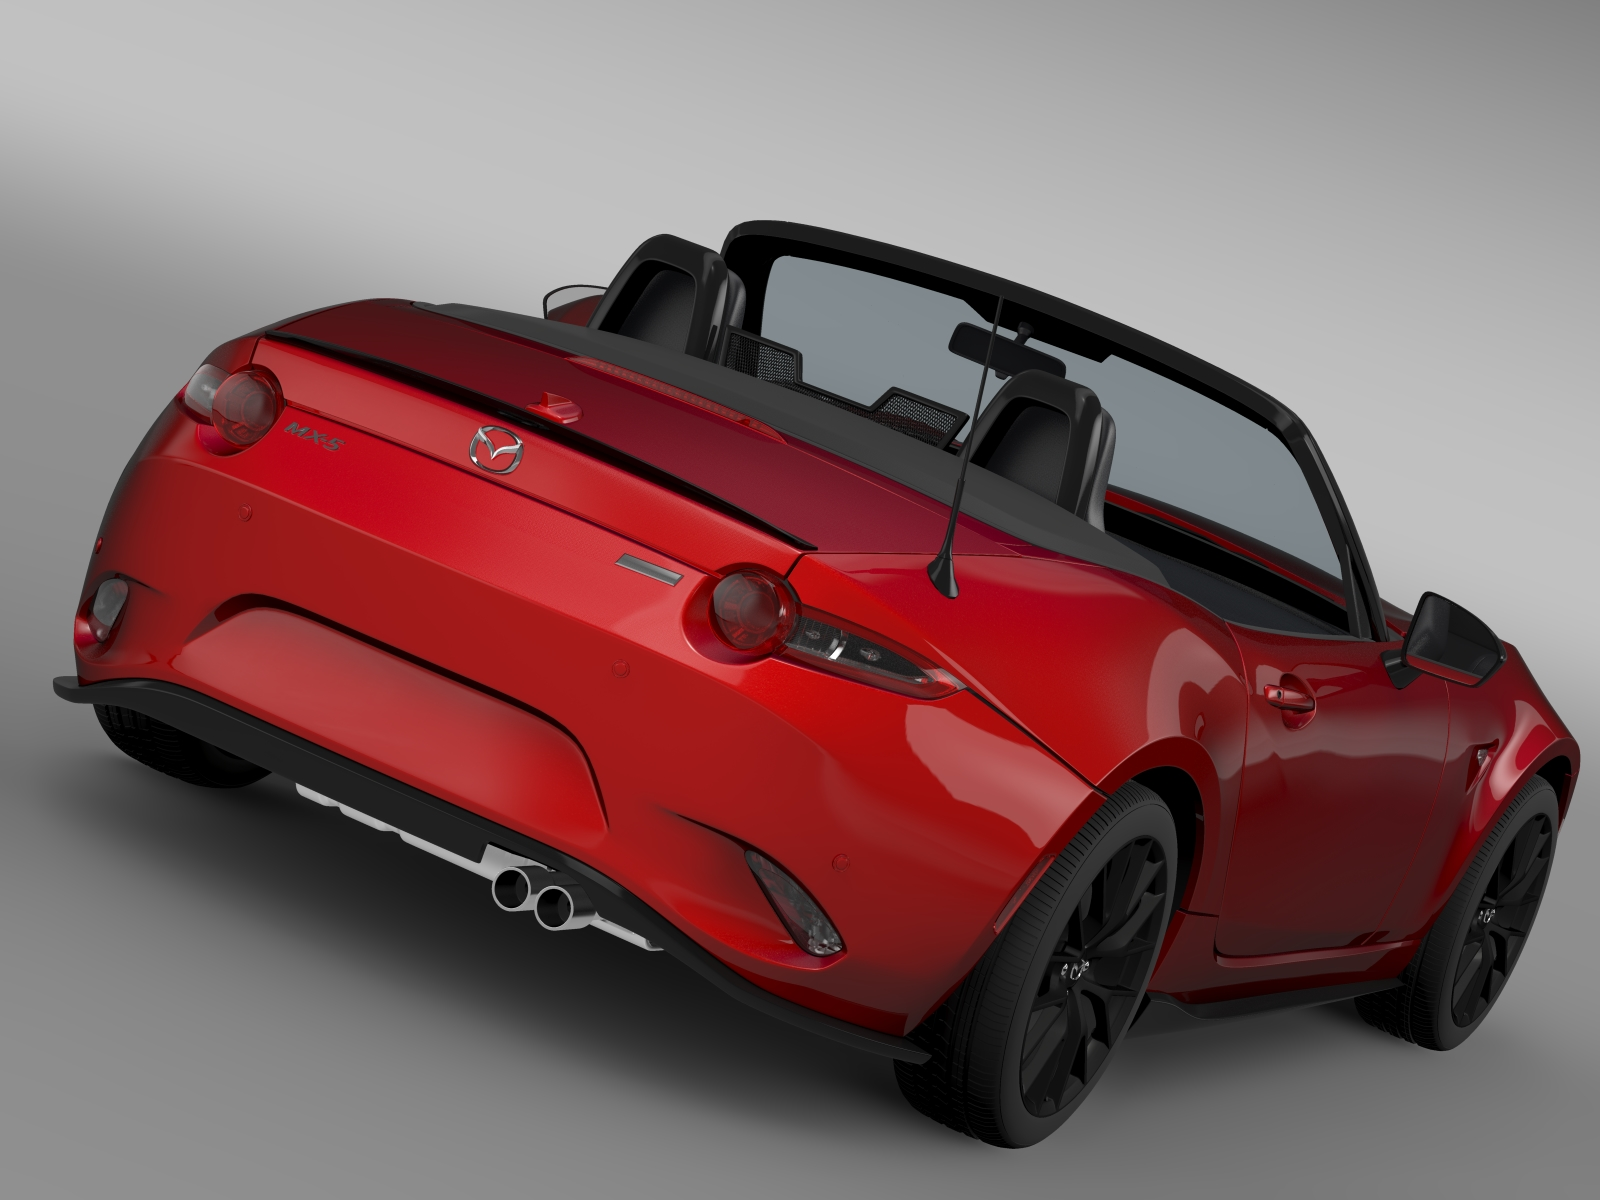 mazda mx 5 maita club 2016 3d model. Black Bedroom Furniture Sets. Home Design Ideas